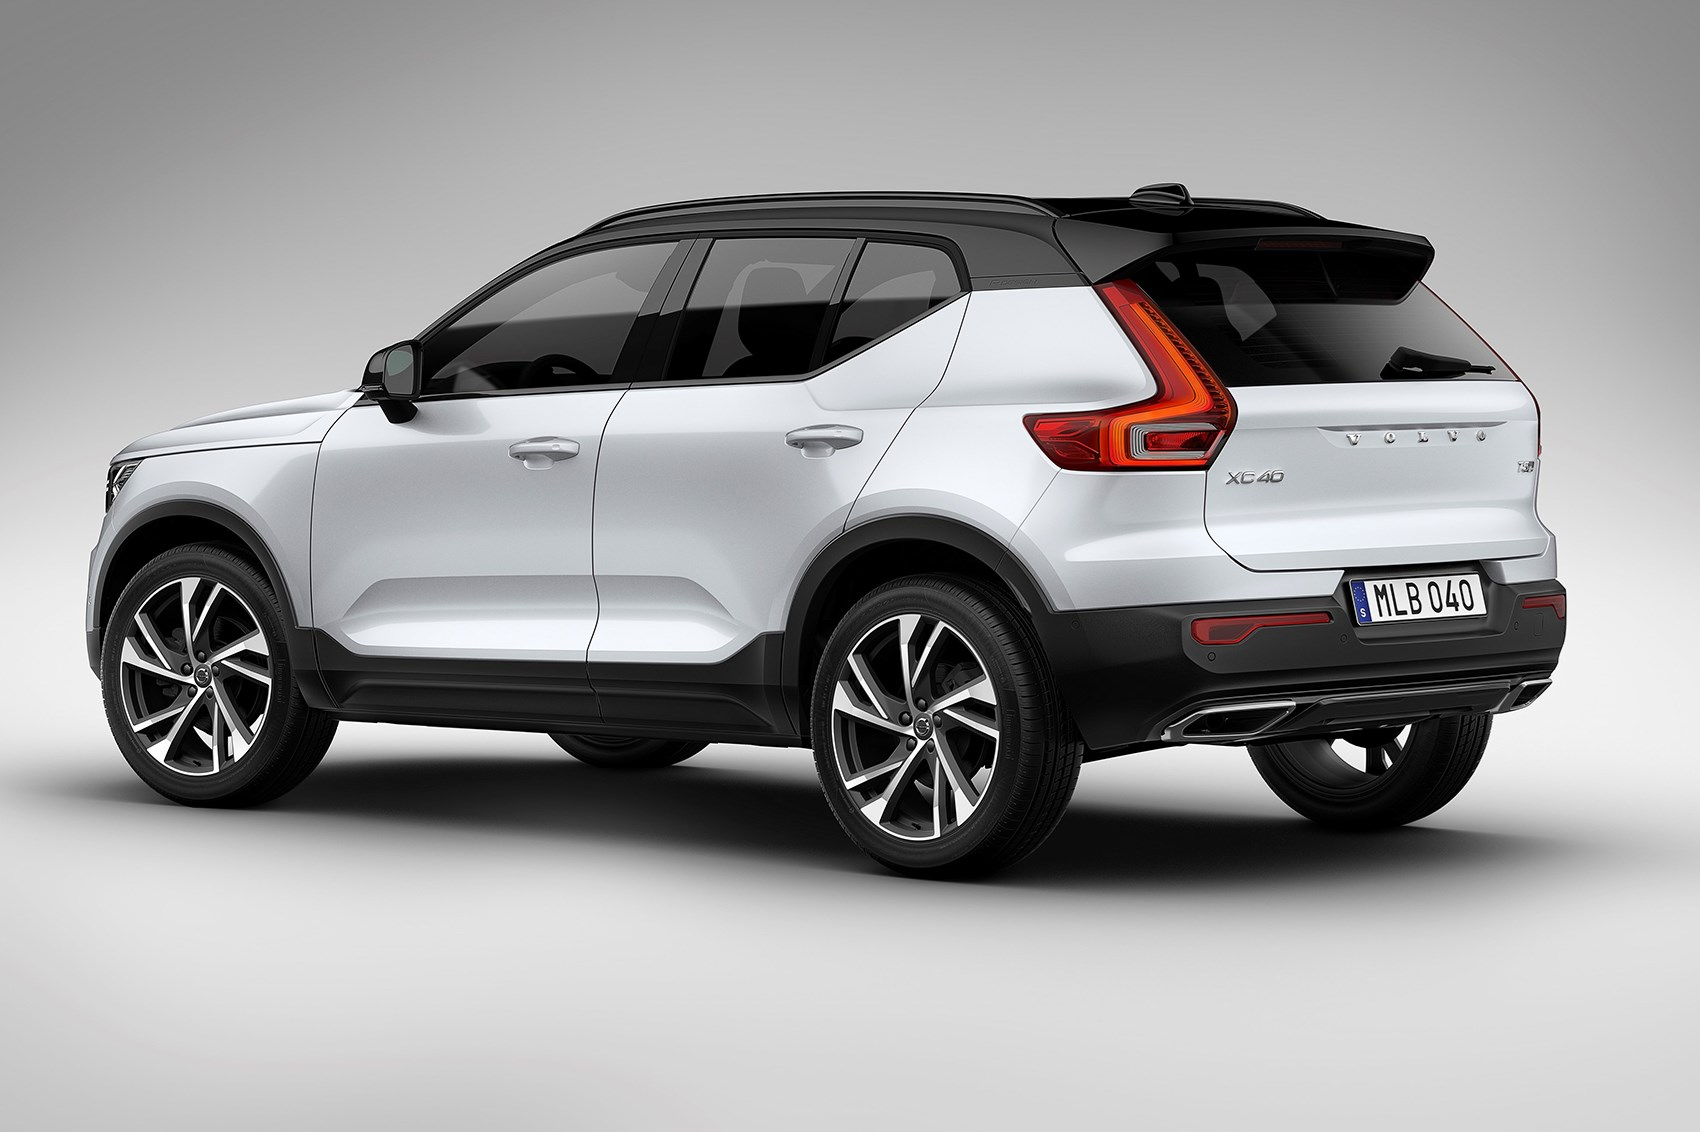 volvo xc40 revealed all new baby crossover is go for 2018 by car magazine. Black Bedroom Furniture Sets. Home Design Ideas